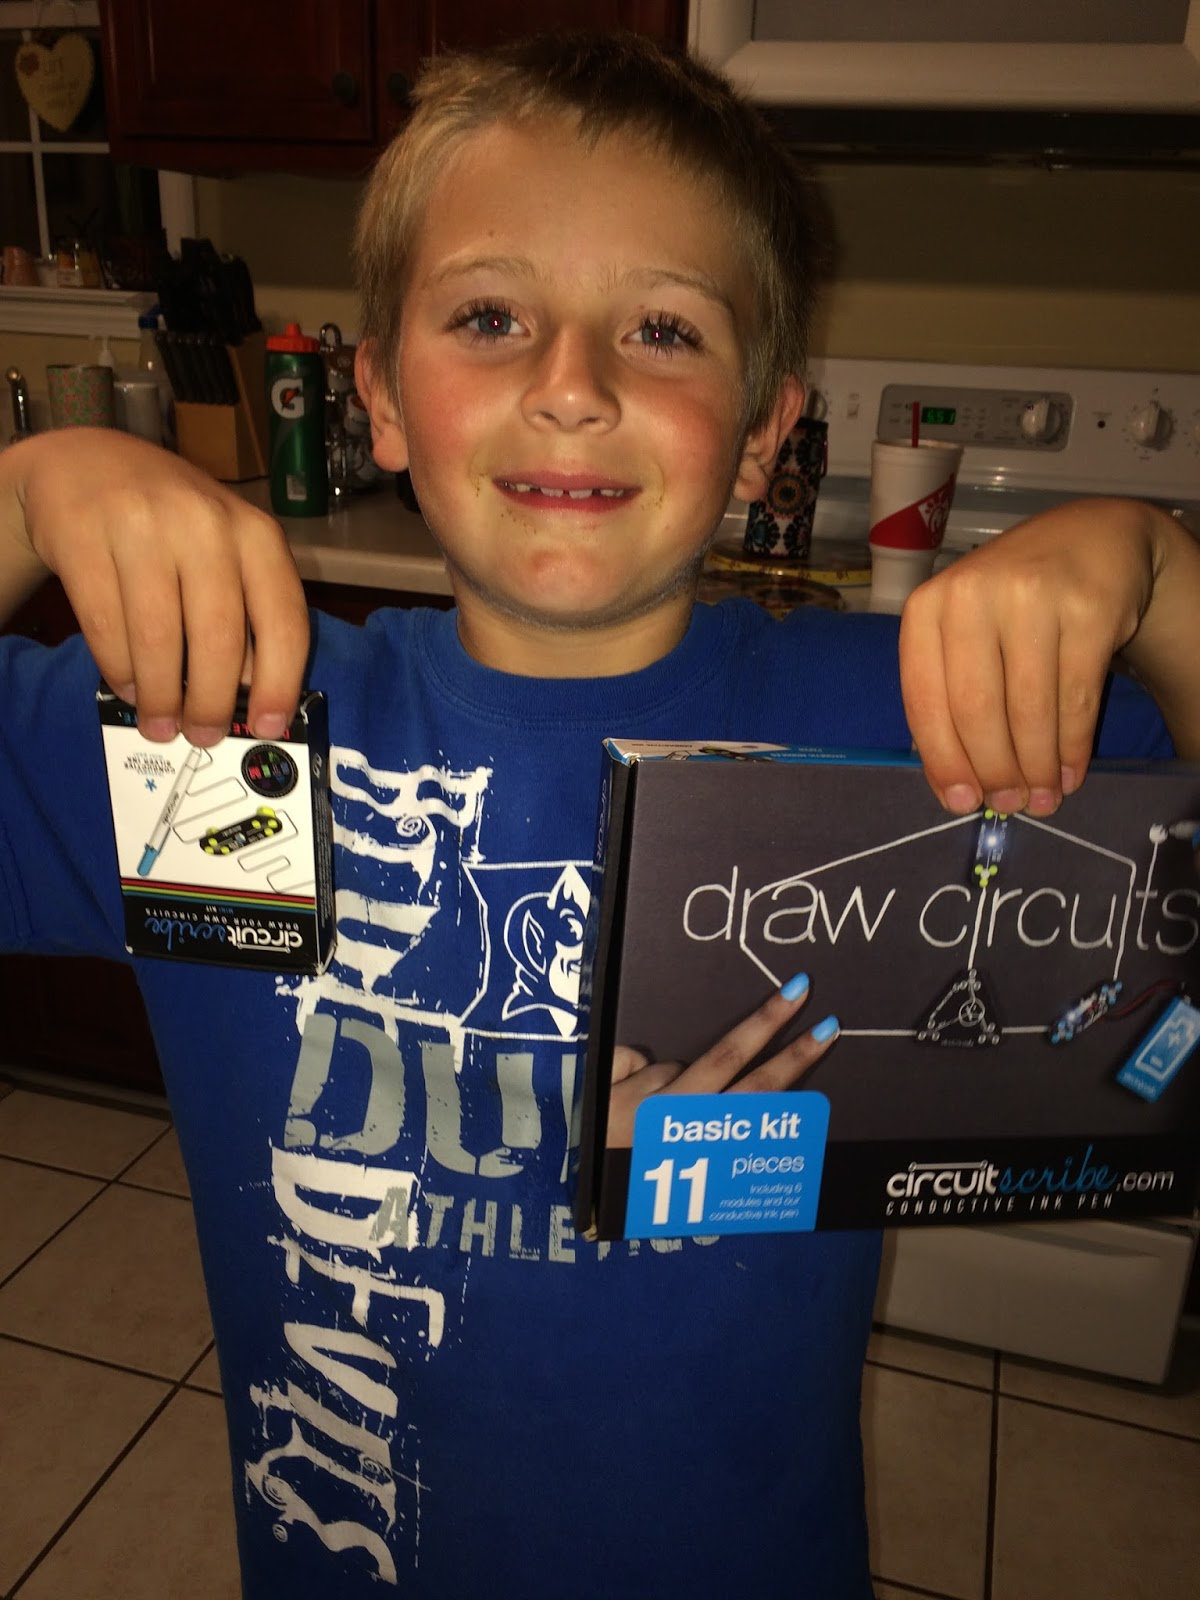 Kids Will Love Circuit Scribe Review Giveaway Mbphgg16 Mommys For Sale I Think Once He Is Familiar With Everything Can Do Going To Get Lots Of Use Out These Fun Kits